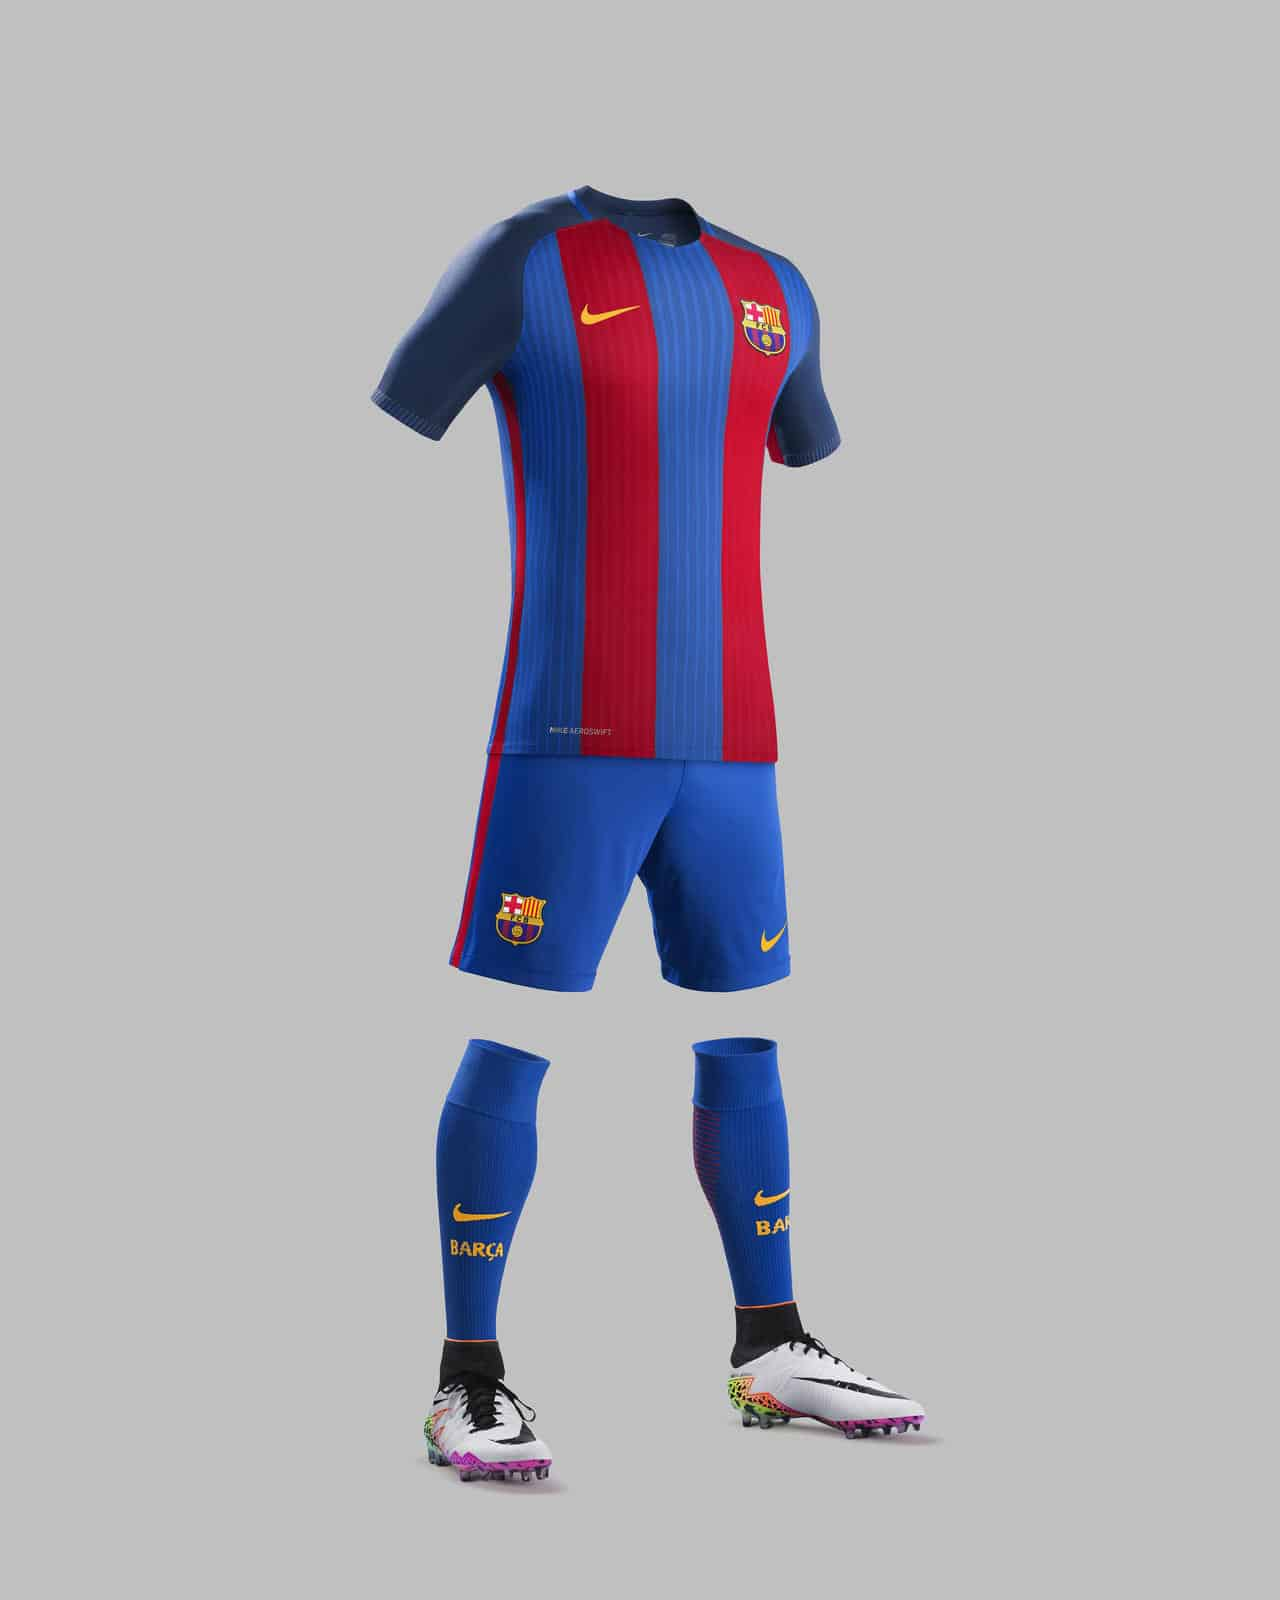 Le fc barcelone d voile ses maillots 2016 2017 sign s nike for Maillot barca exterieur